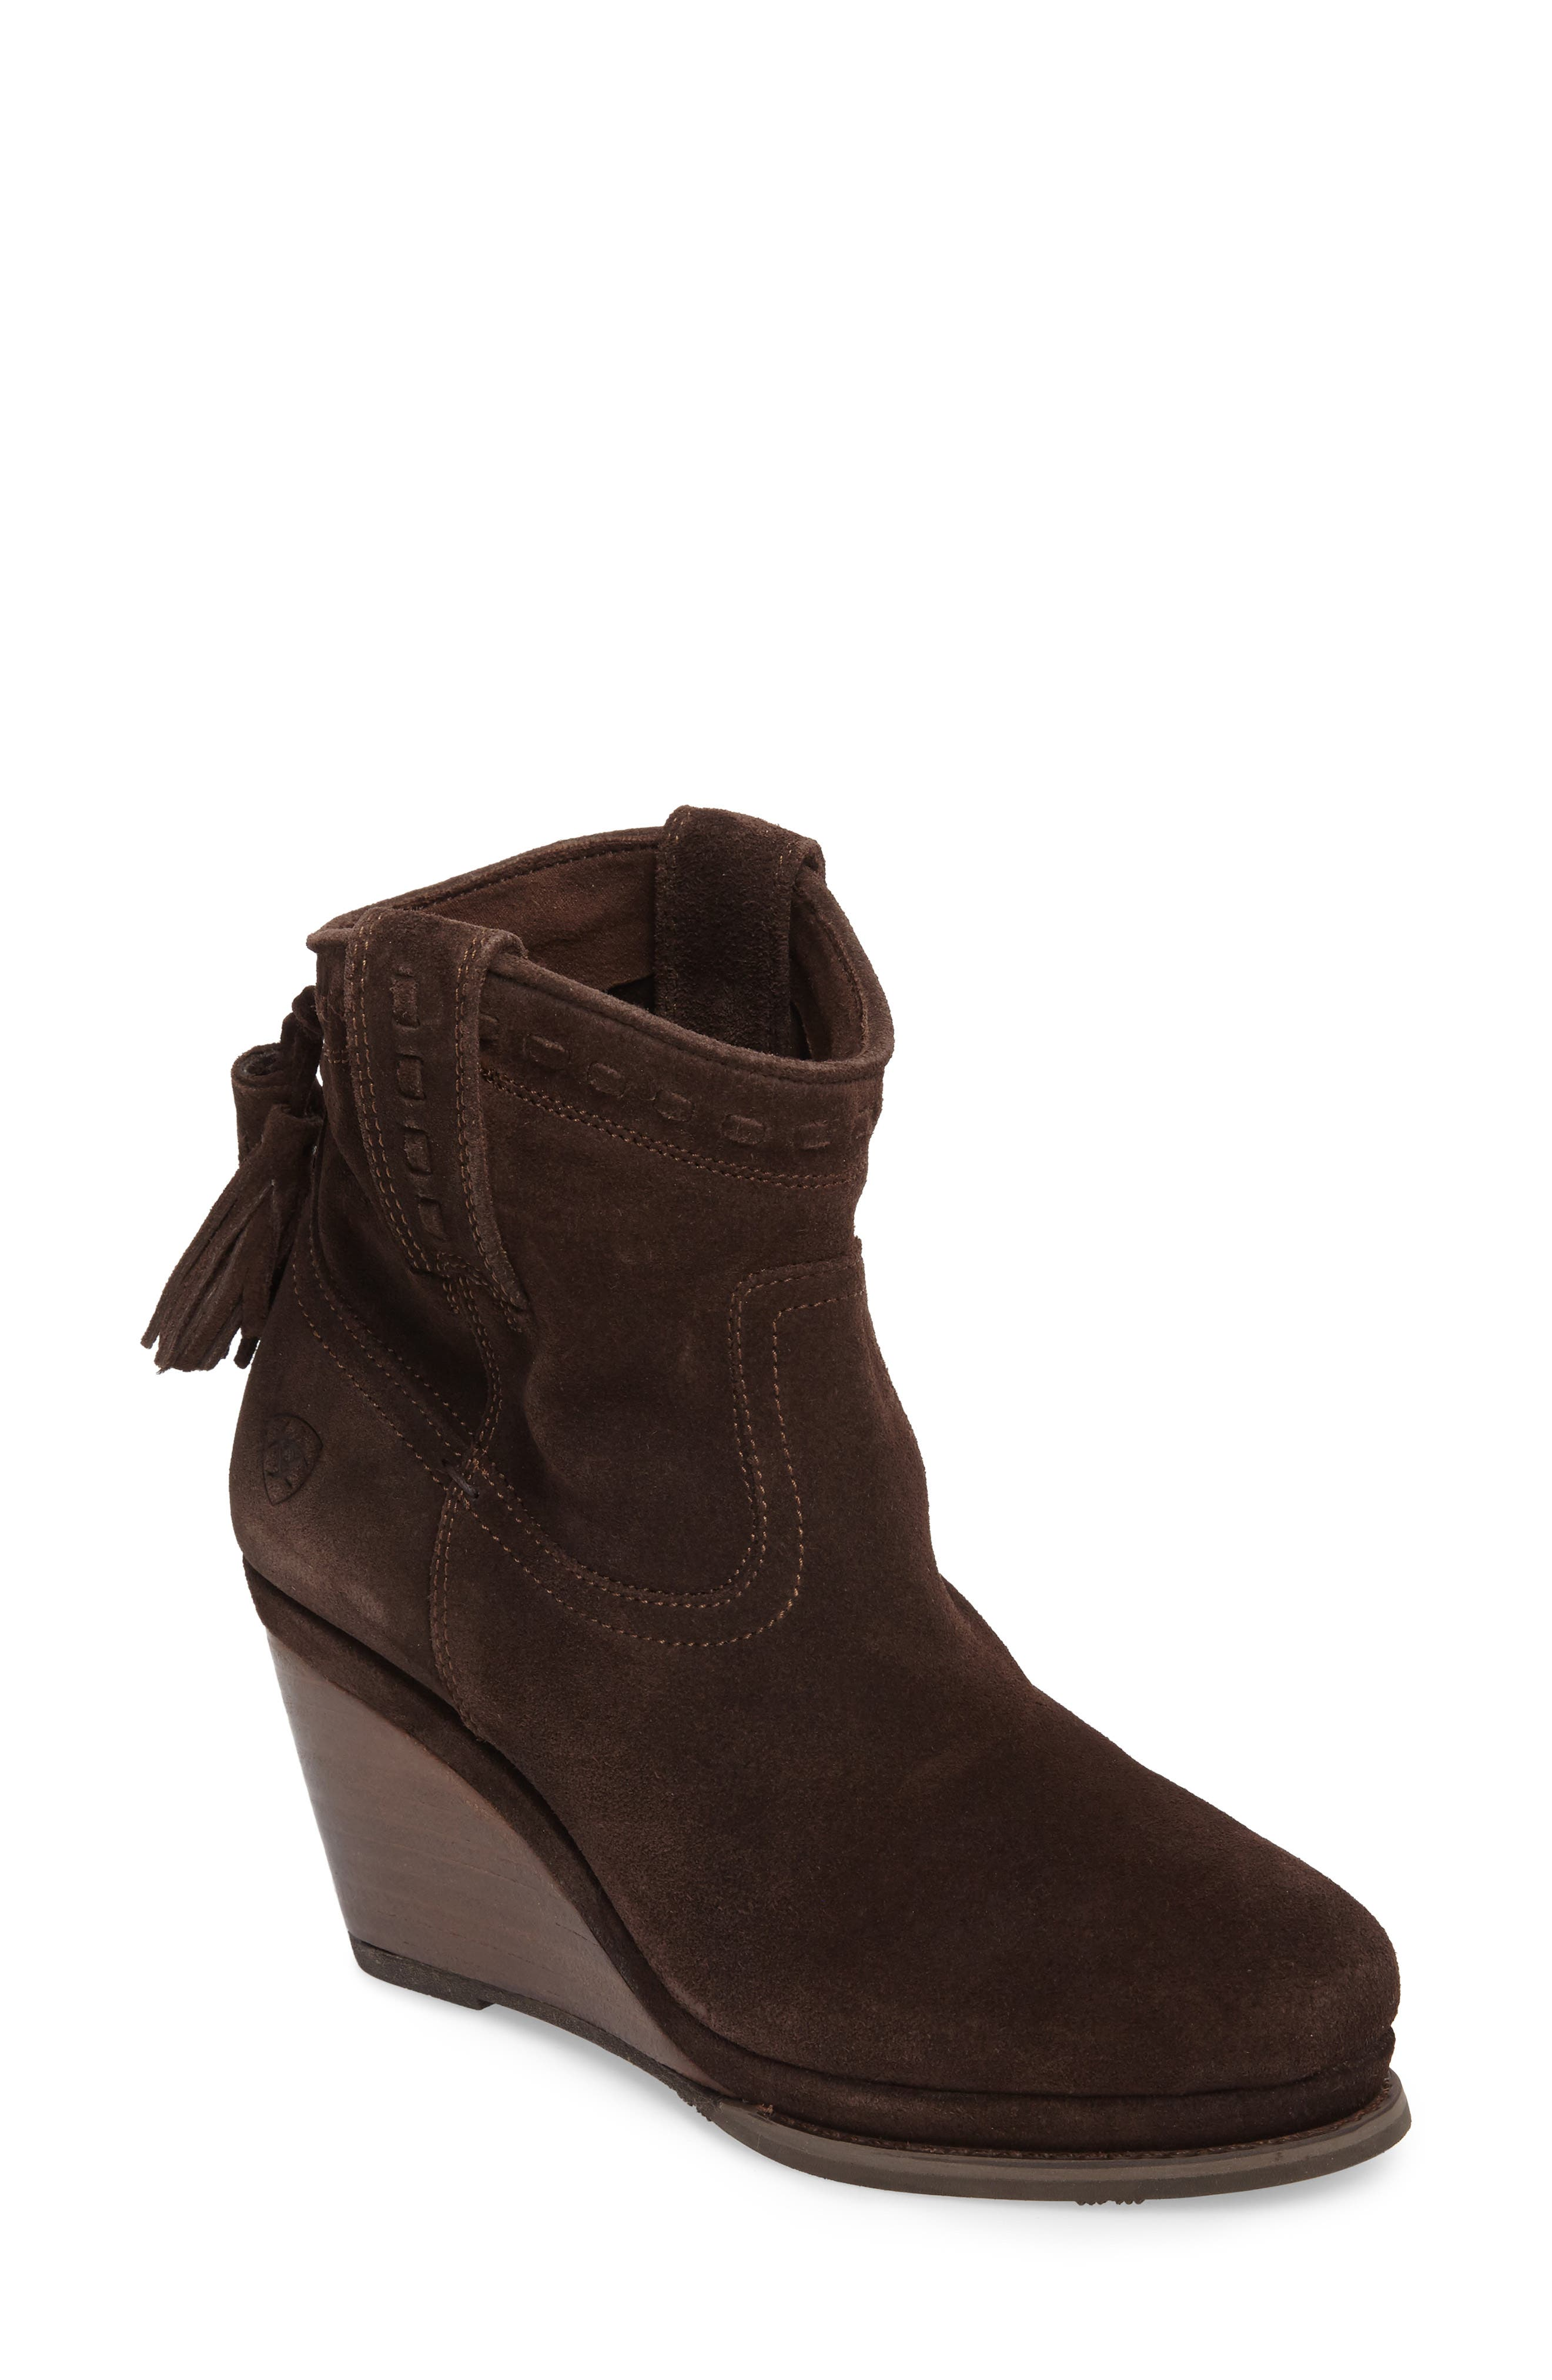 Broadway Western Wedge Boot,                             Main thumbnail 1, color,                             200